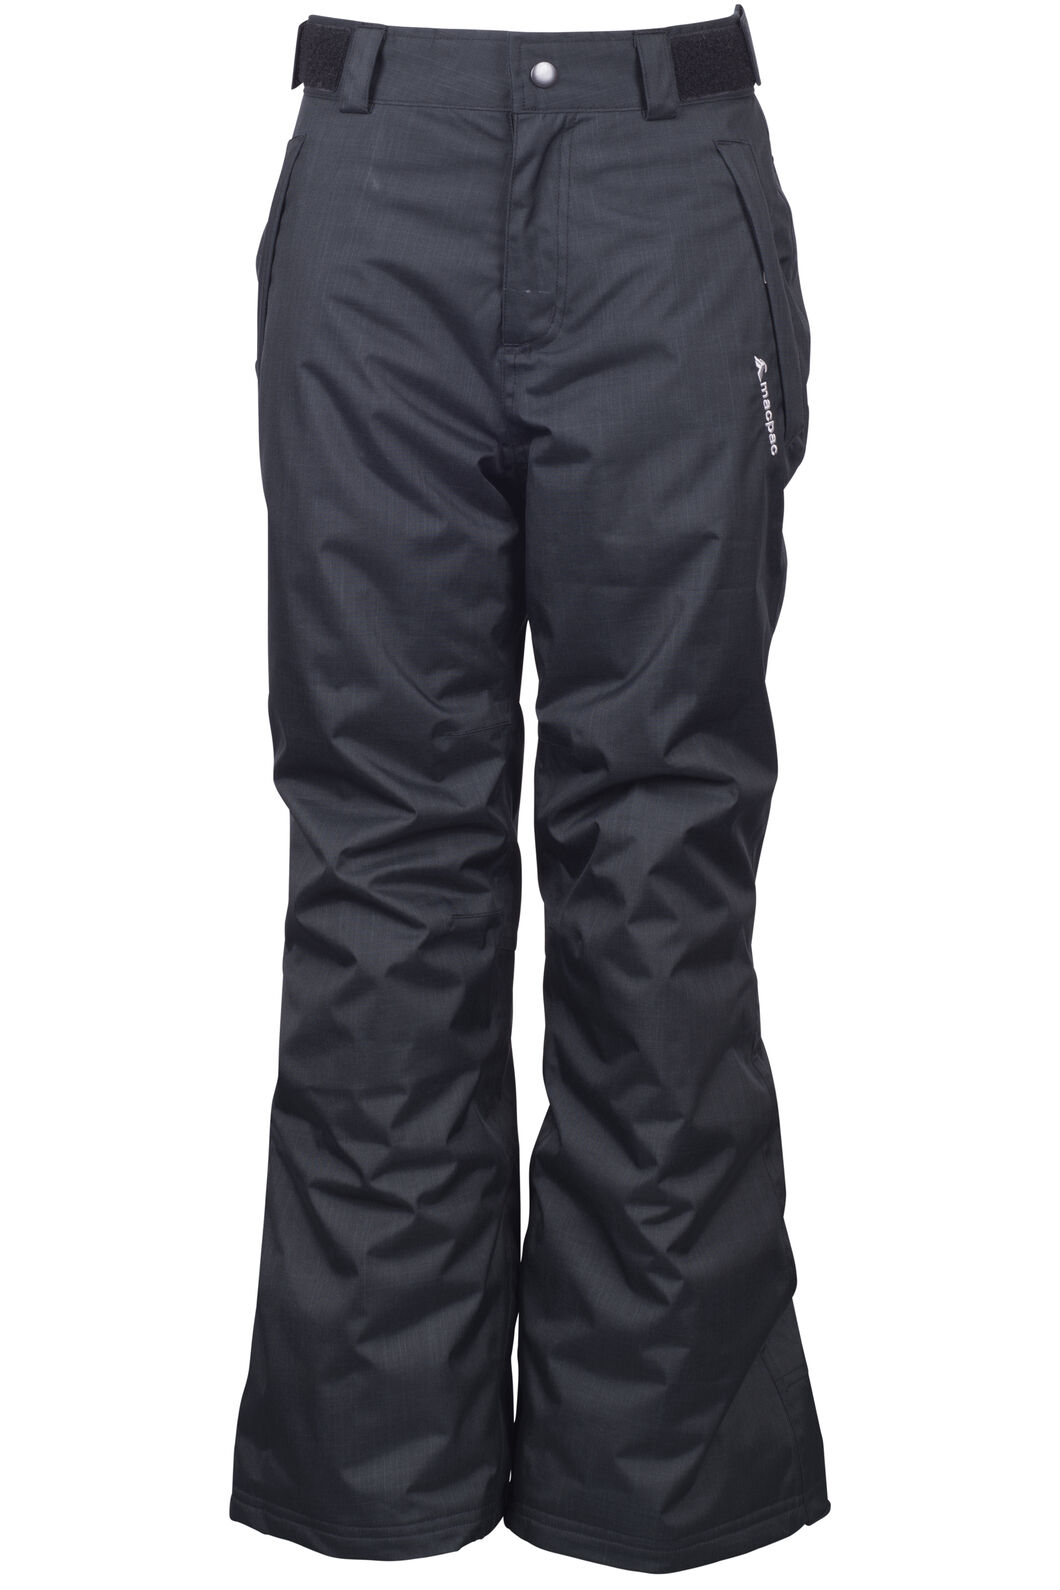 Macpac Spree Ski Pants - Kids', Black, hi-res